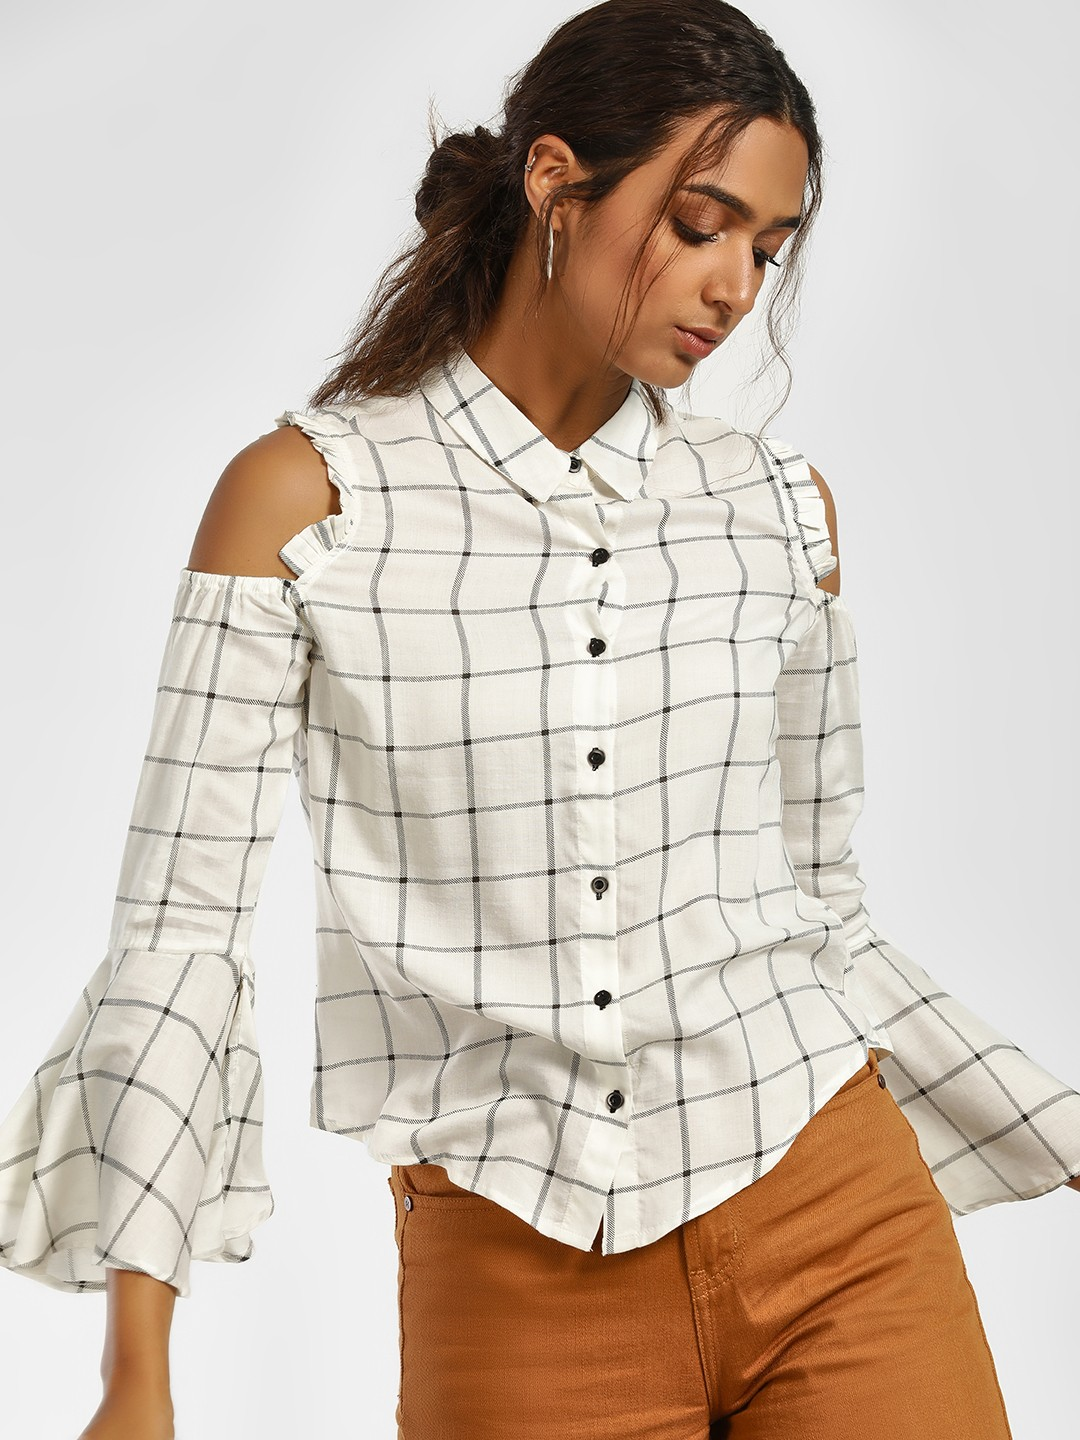 Blue Sequin White Windowpane Check Cold Shoulder Shirt 1